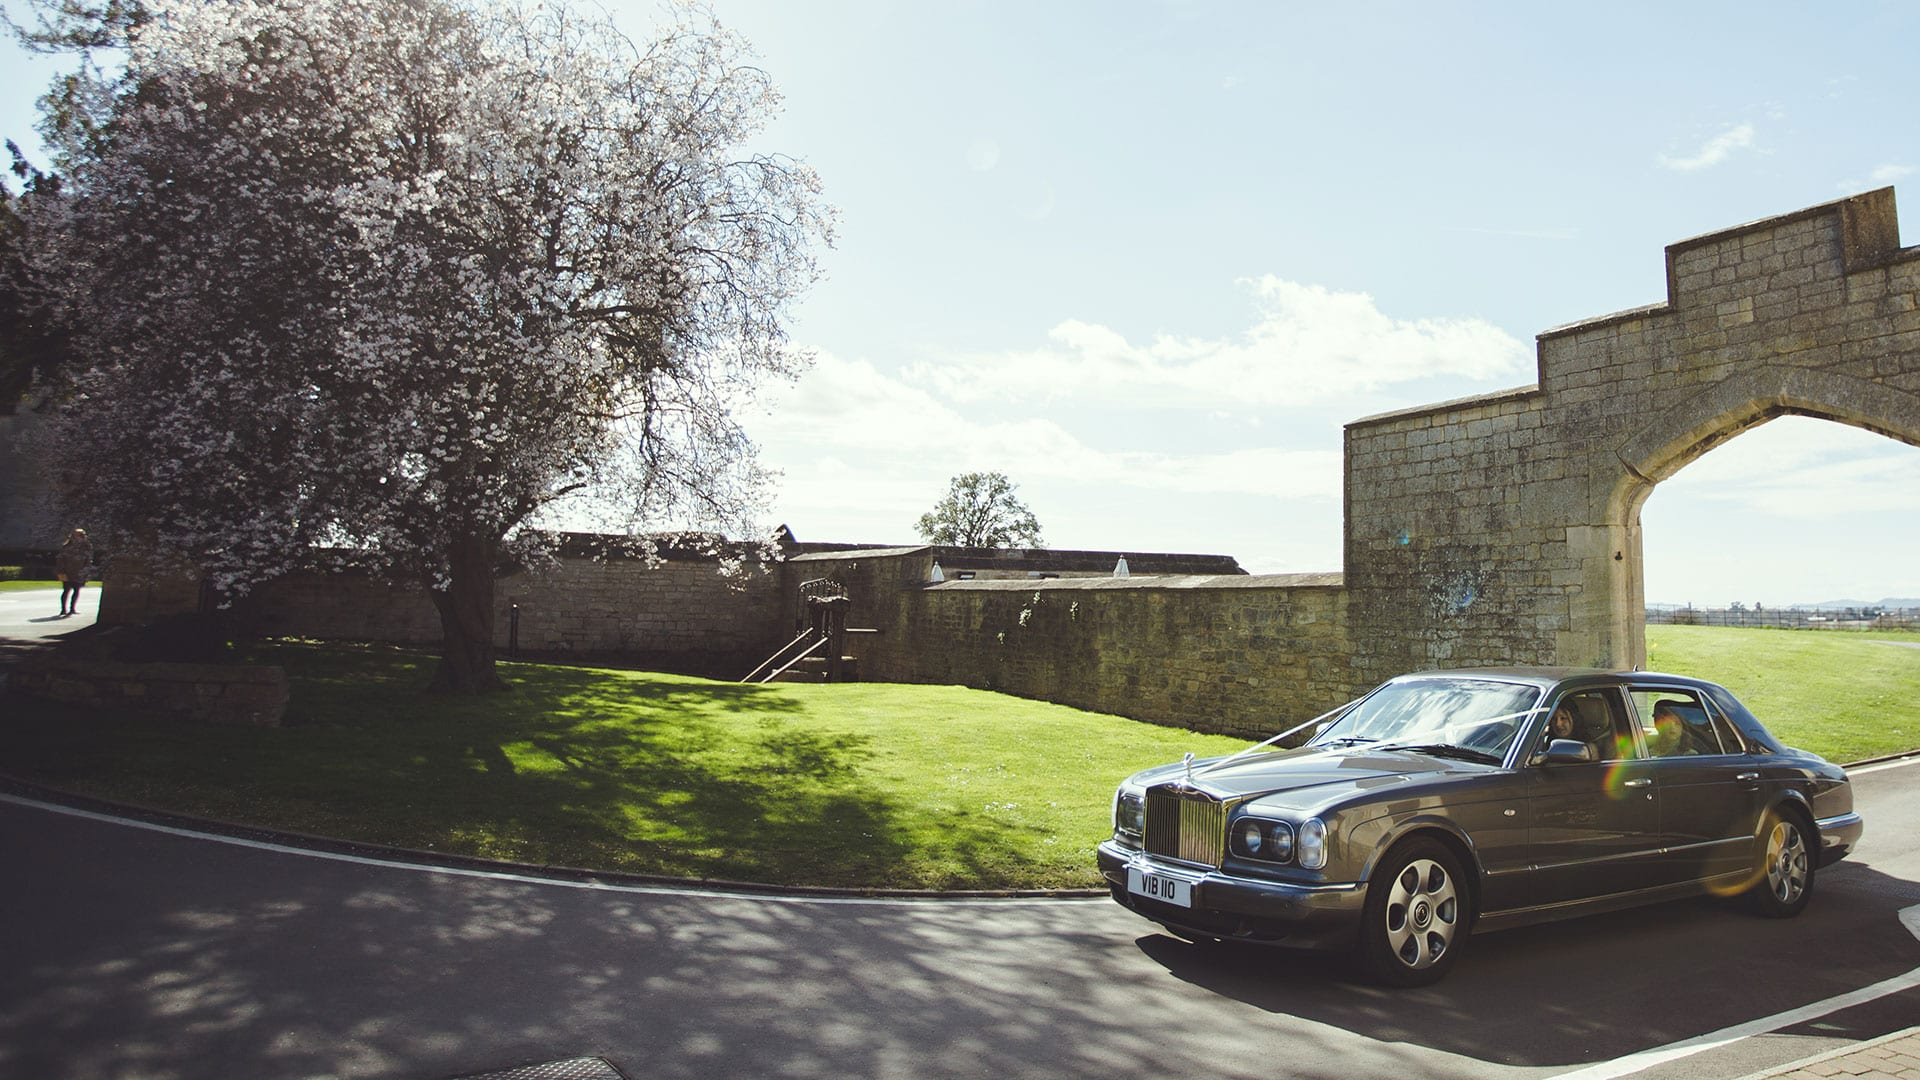 Bentley Bridesmaid's Car in grey arriving at wedding venue